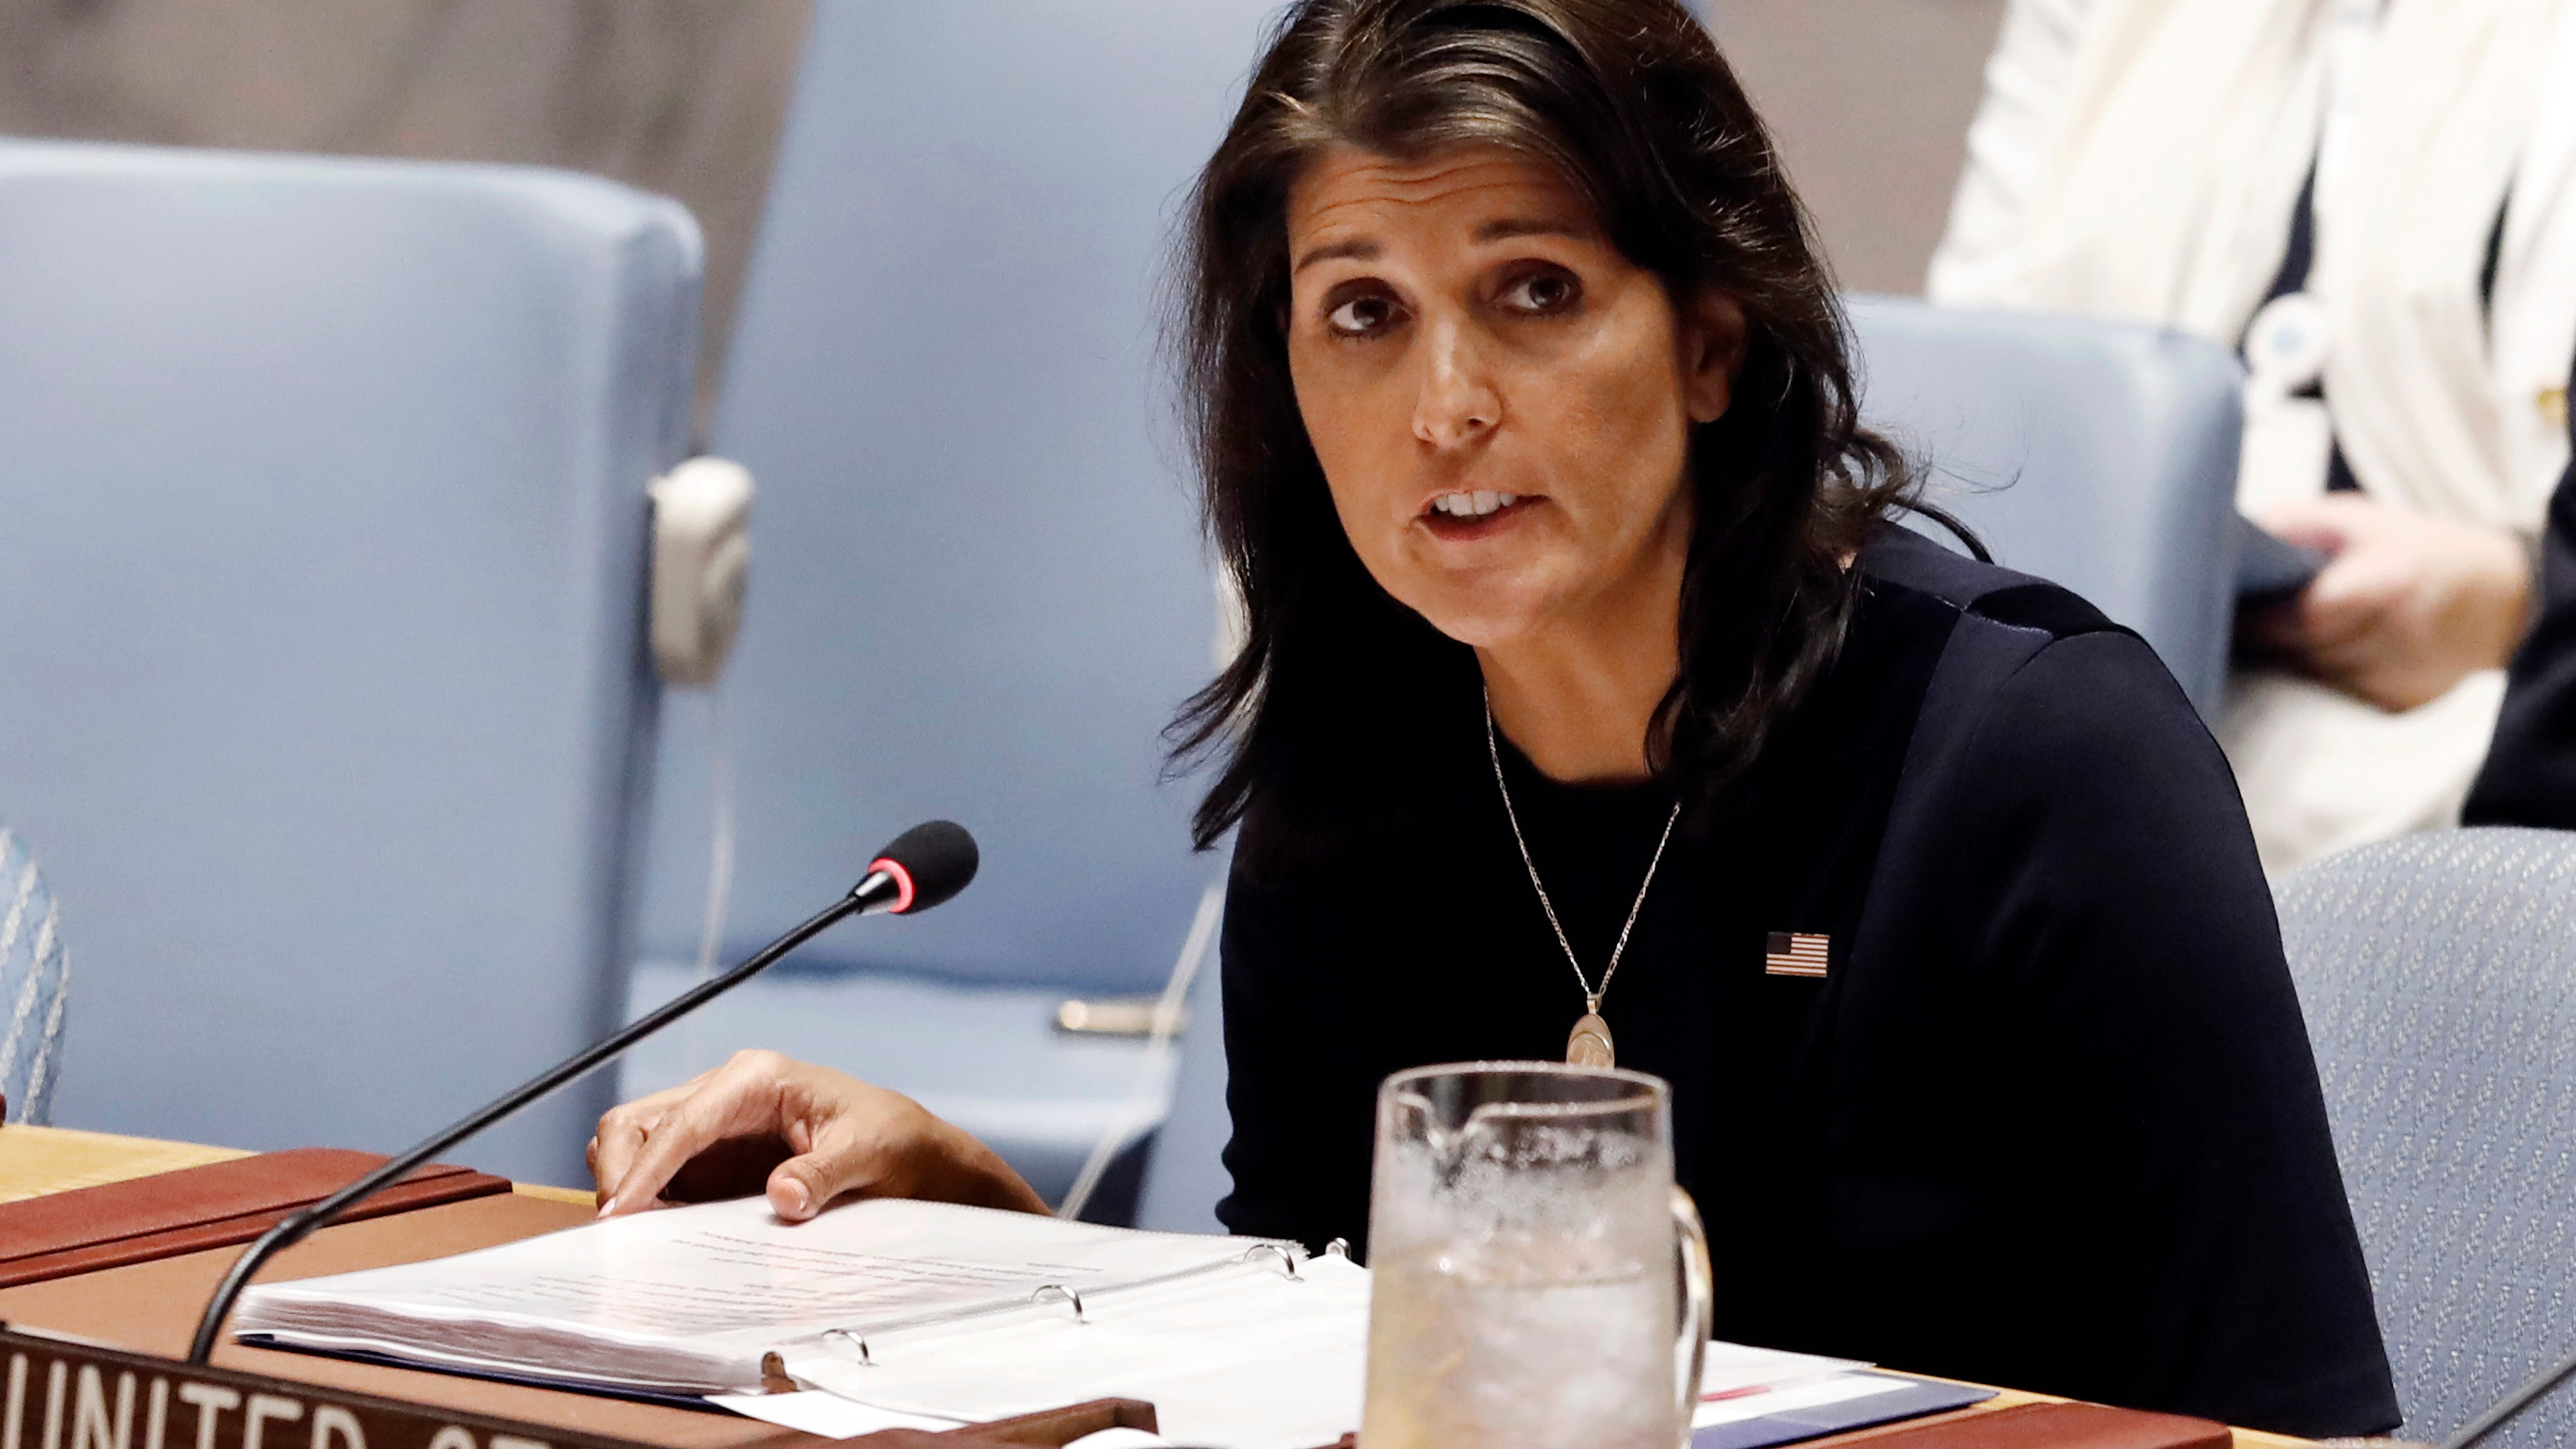 FILE - In this Sept. 17, 2018 file photo, U.S. Ambassador Nikki Haley addresses the United Nations Security Council at U.N. headquarters. (AP Photo/Richard Drew) ORG XMIT: WX106